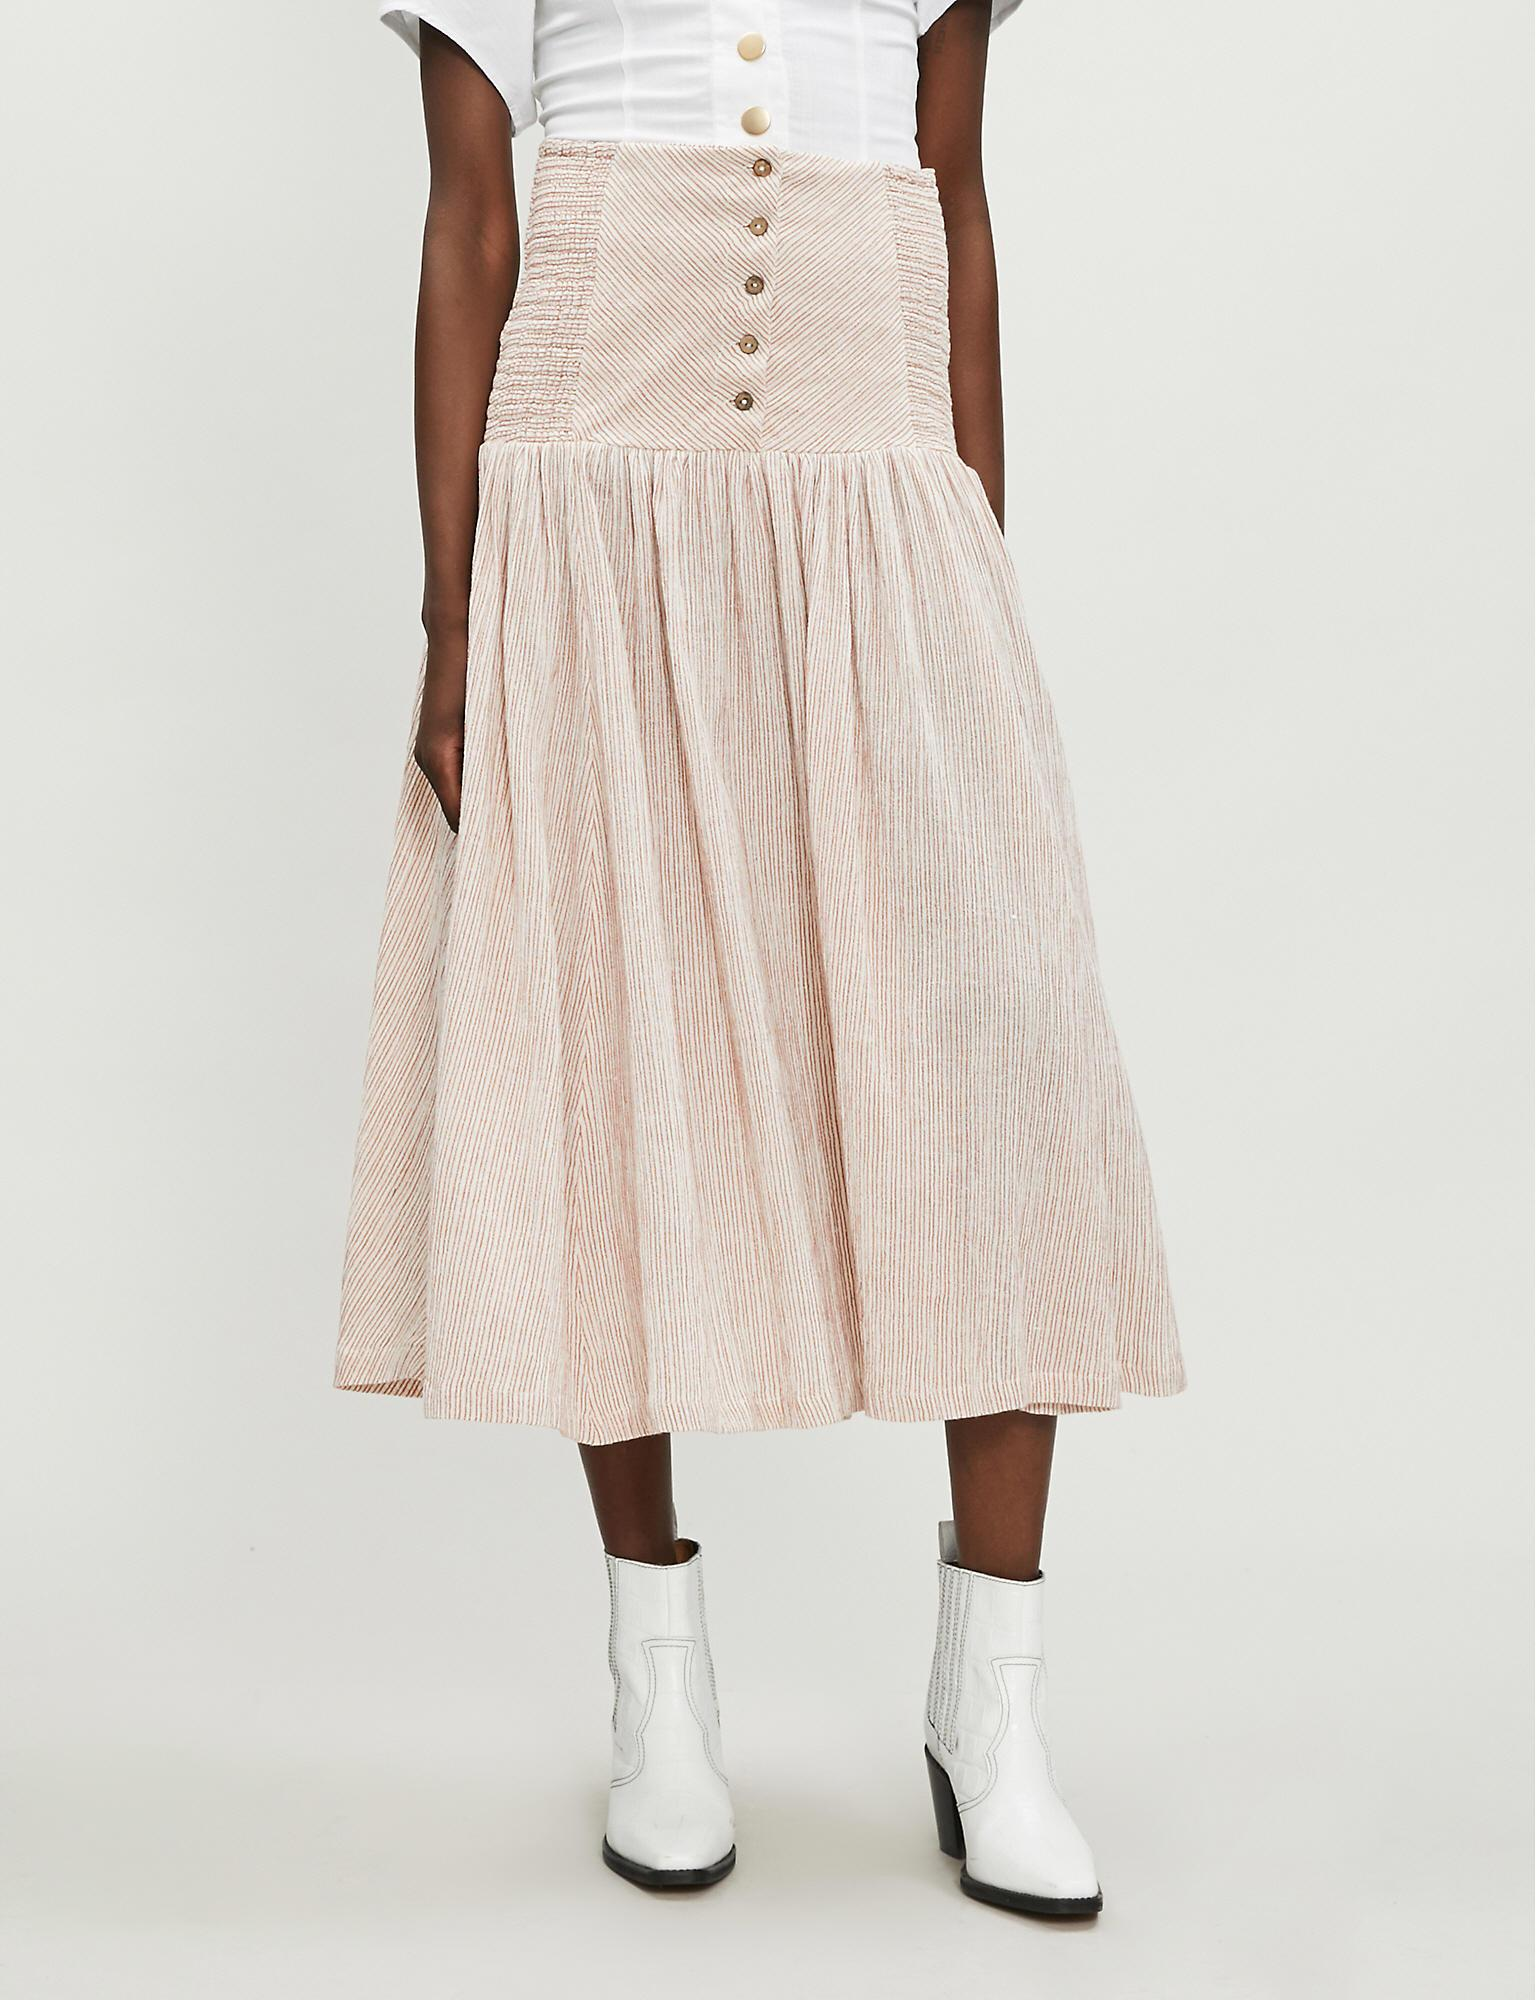 bfa699c4a2 Free People Ocean Eyes Cheesecloth Maxi Skirt in Natural - Lyst